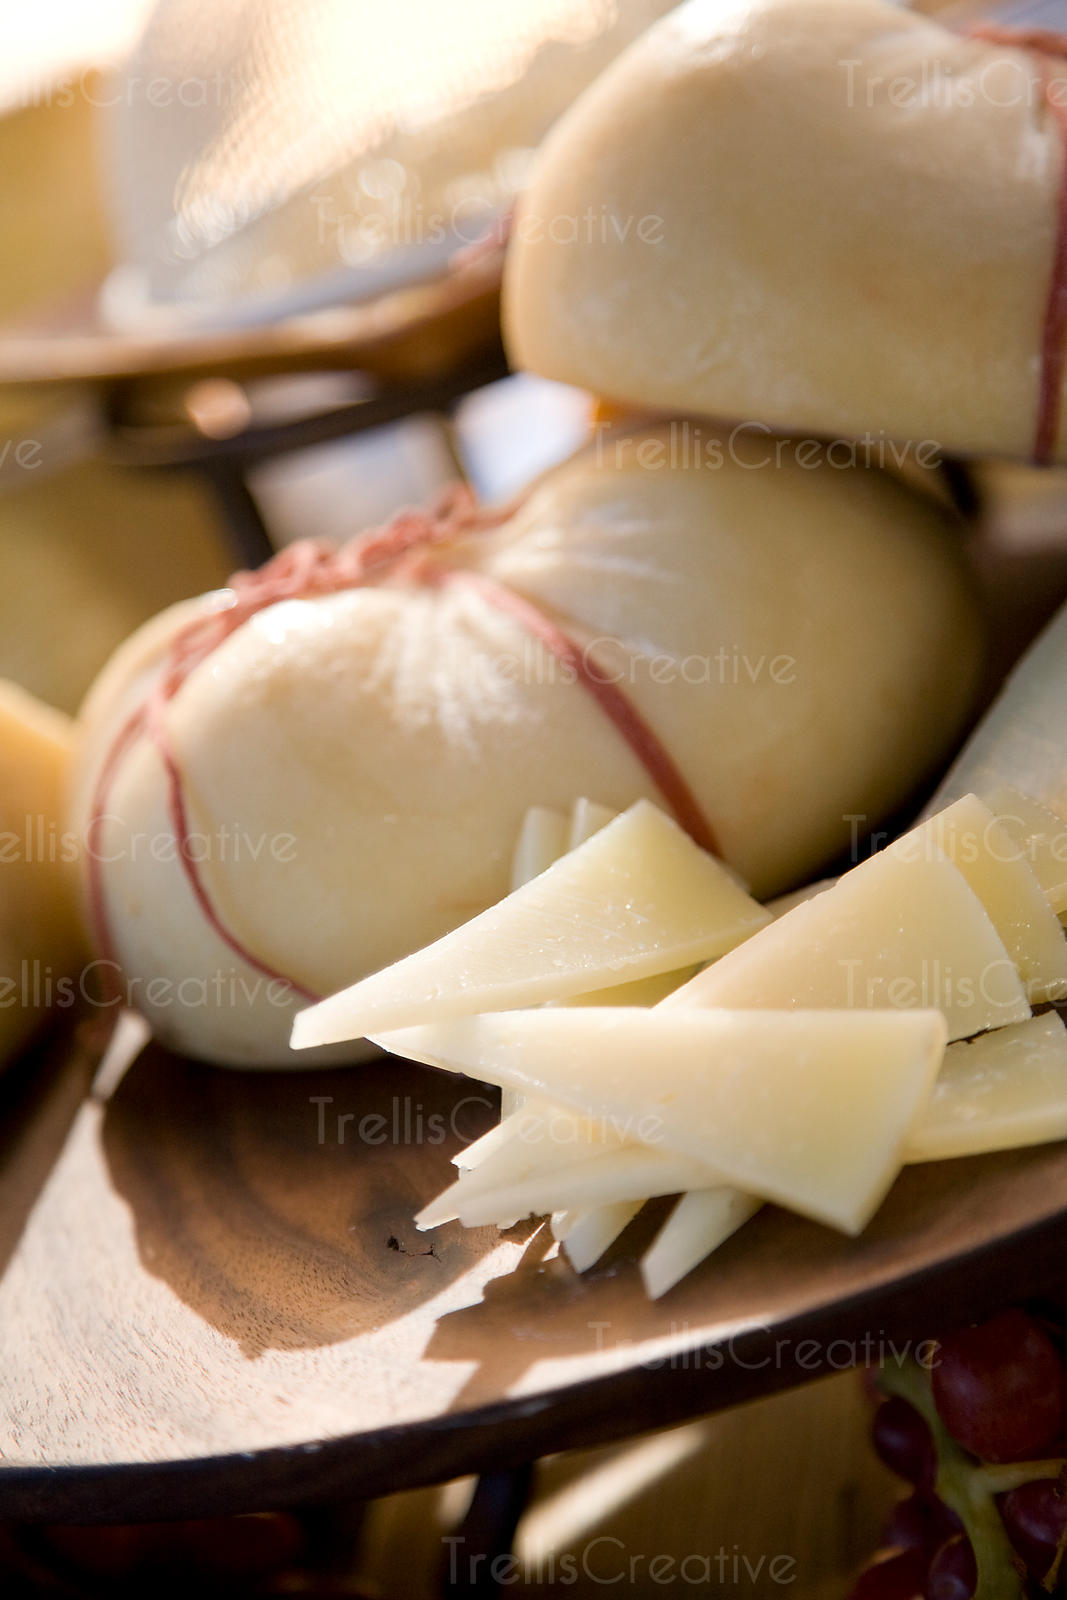 Slices of hand-made cheese ready to be snacked on